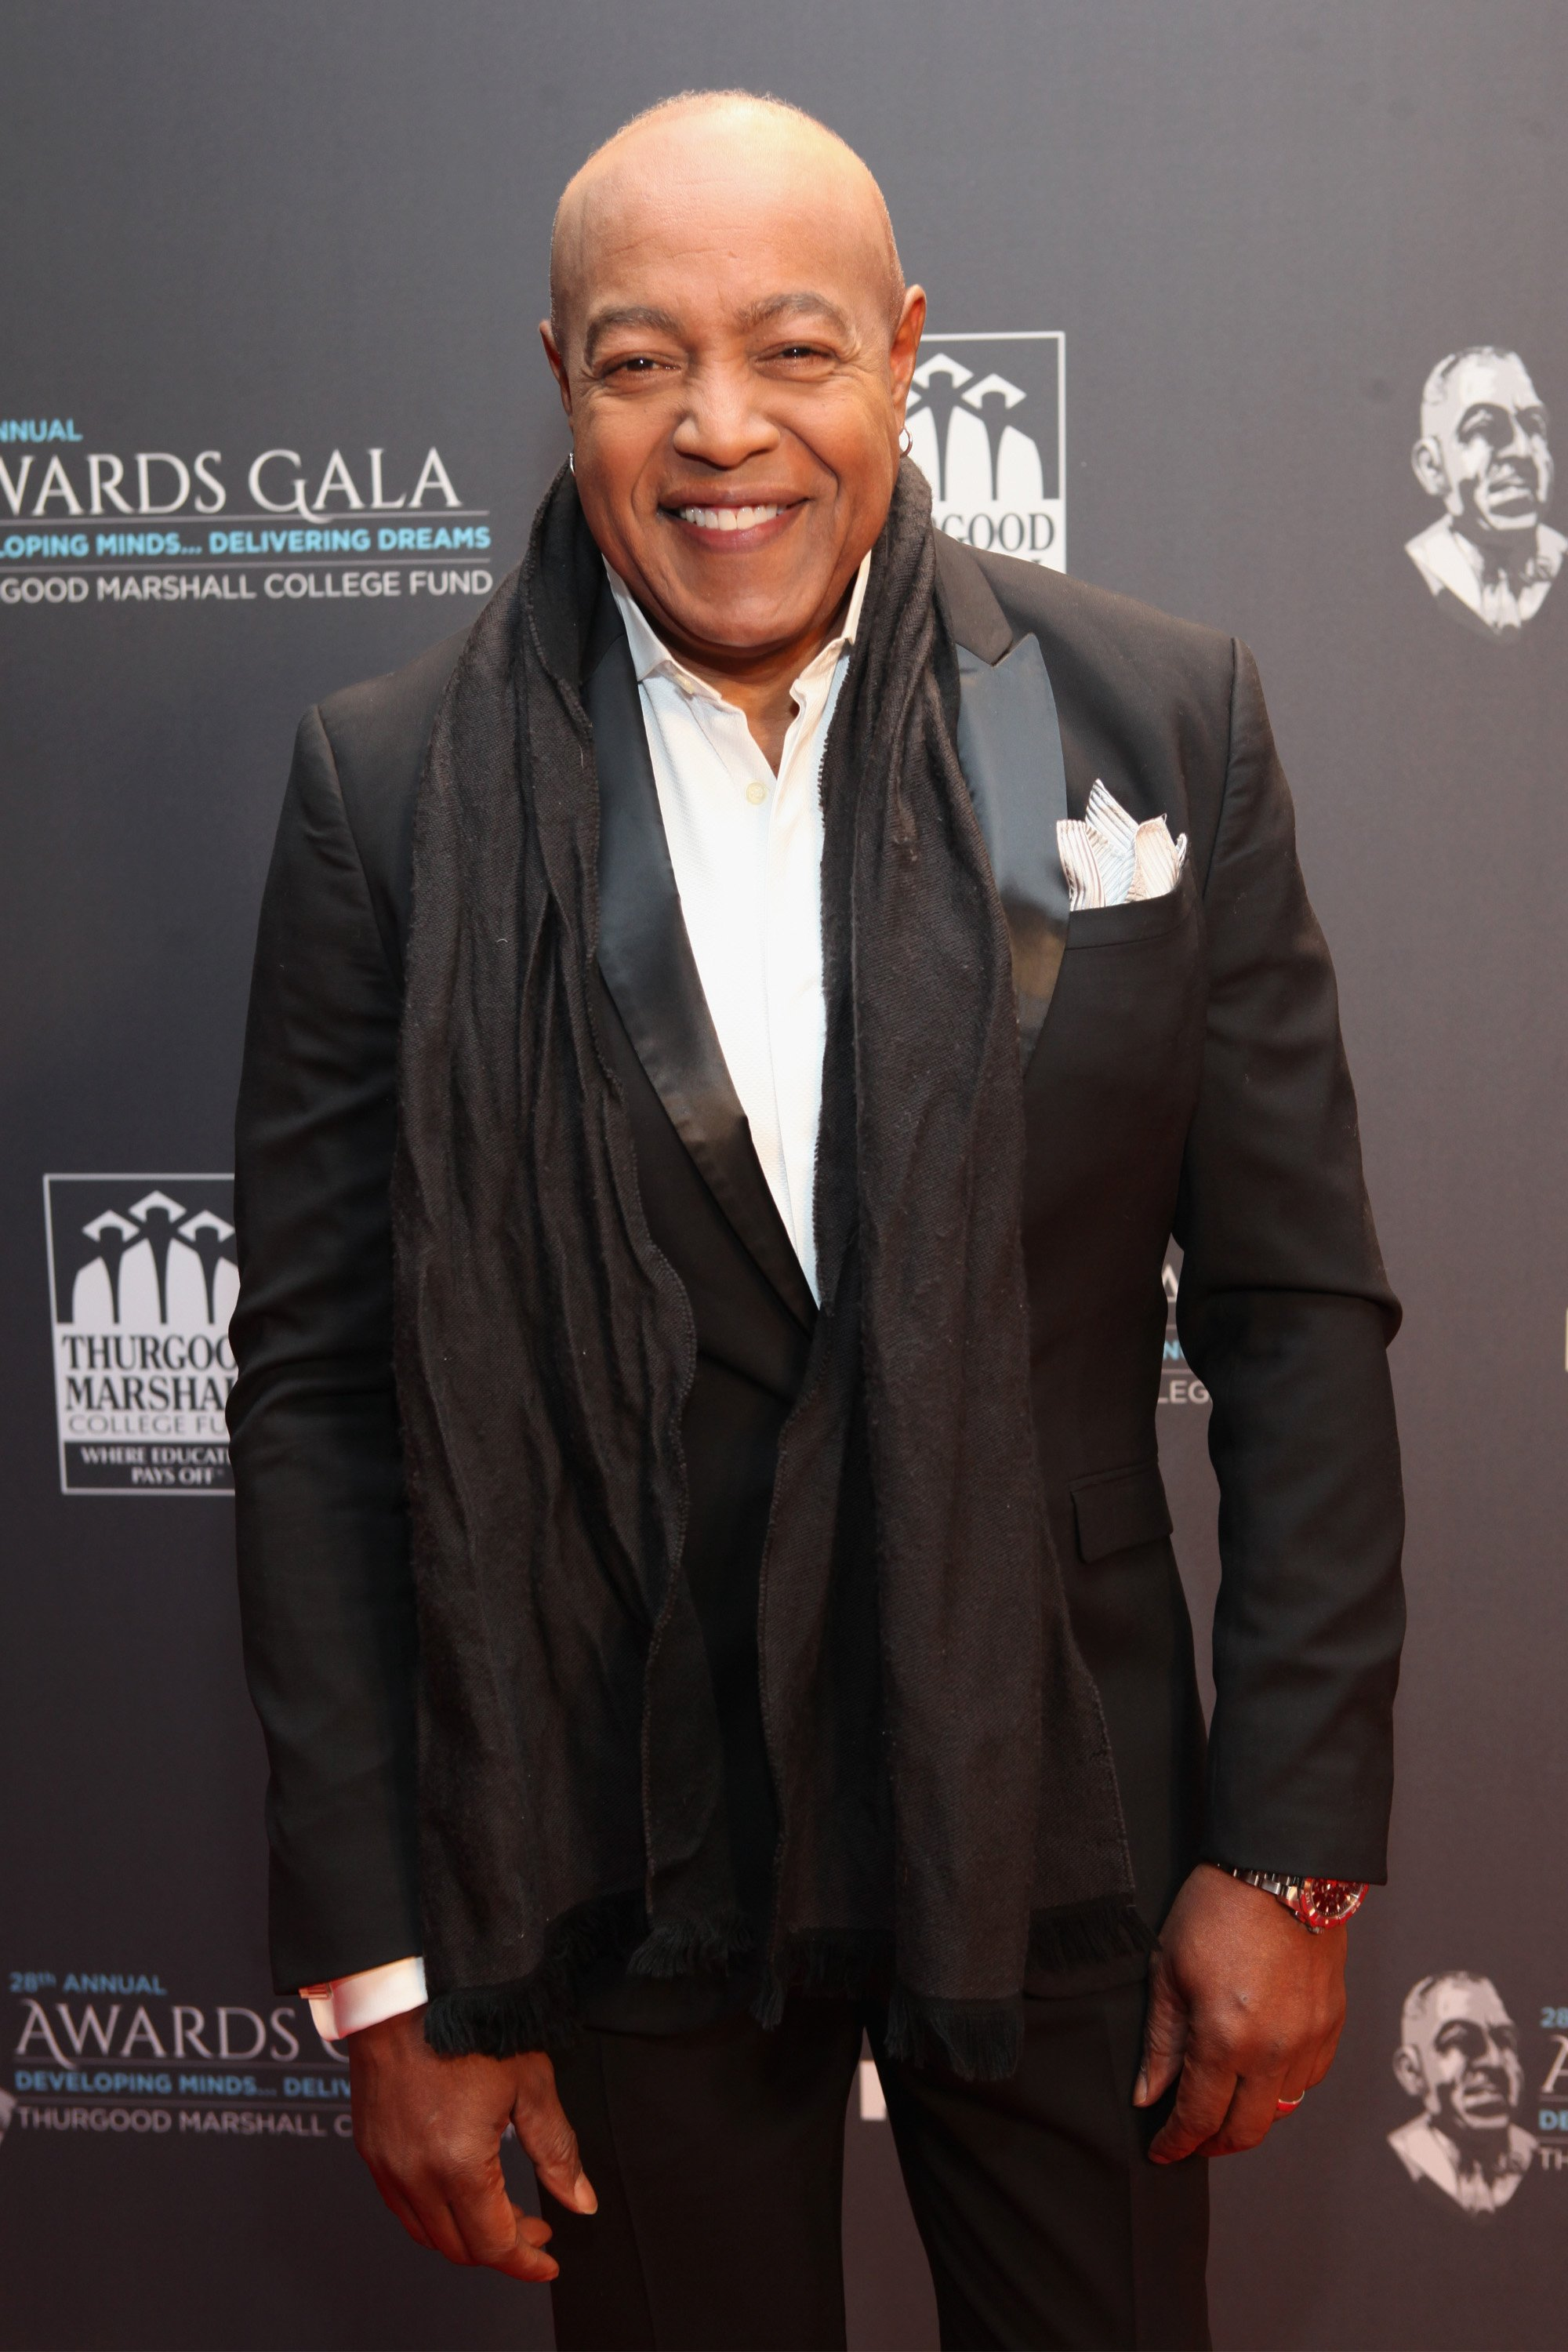 Peabo Bryson at the Thurgood Marshall College Fund 28th Annual Awards Gala at Washington Hilton on November 21, 2016 in Washington, DC. | Source: Getty Images